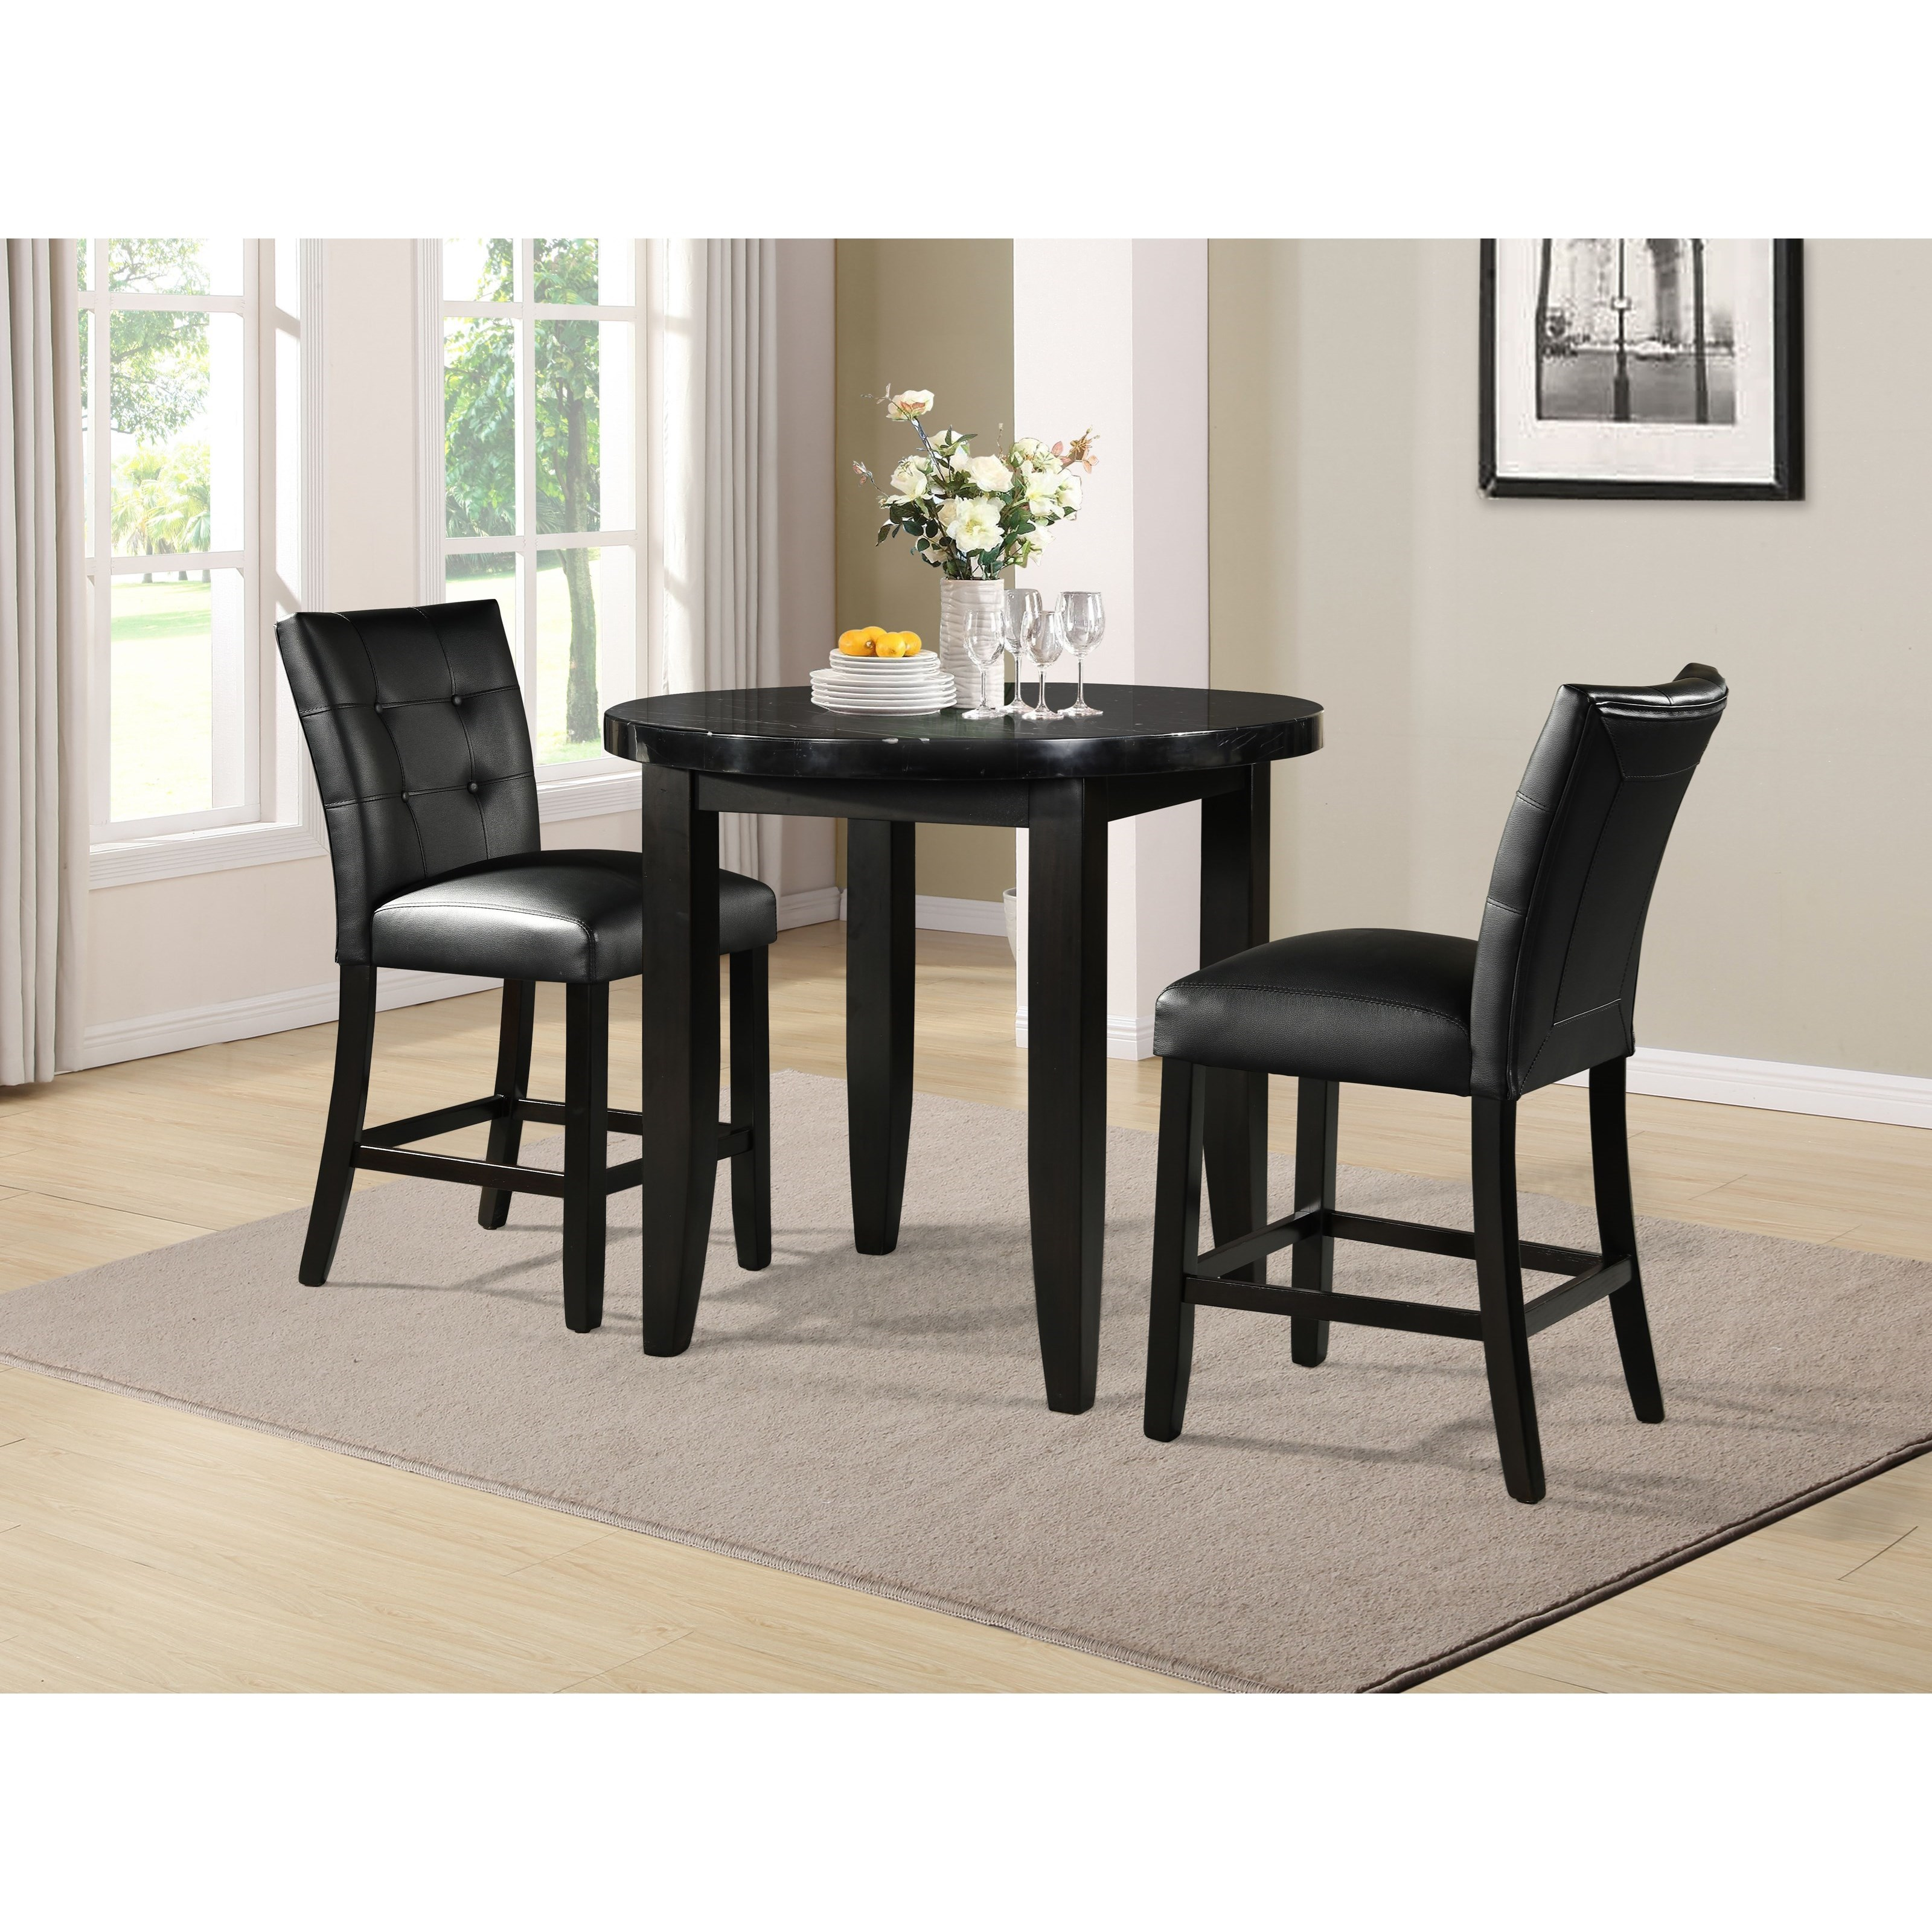 Markina 3-Piece Counter Table and Chair Set by Prime at Prime Brothers Furniture